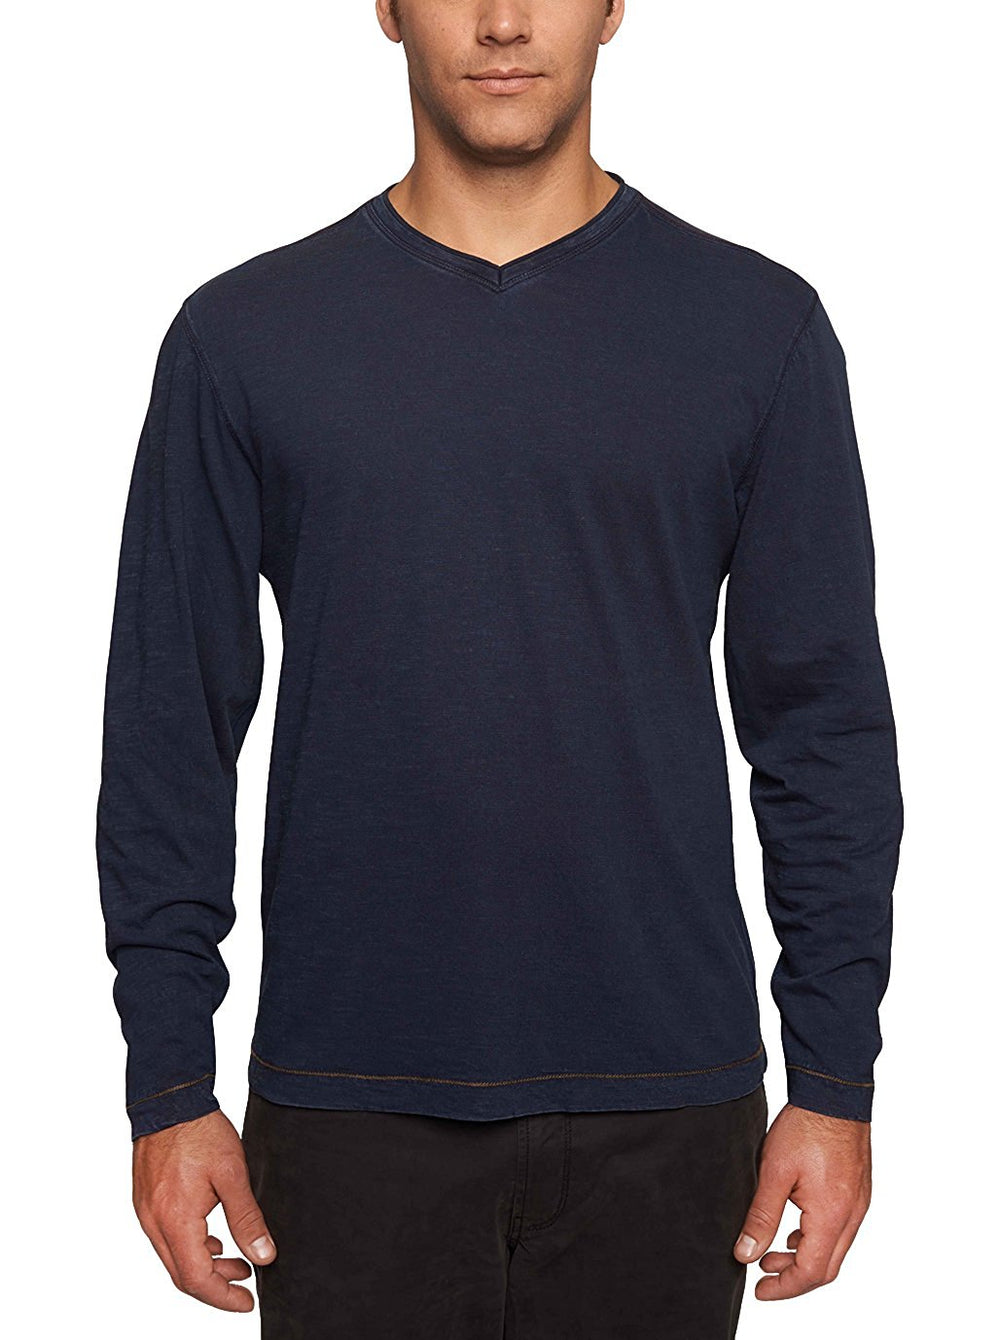 TADD by Thaddeus Men's CHIP Long Sleeve Jersey V-Neck T Shirt